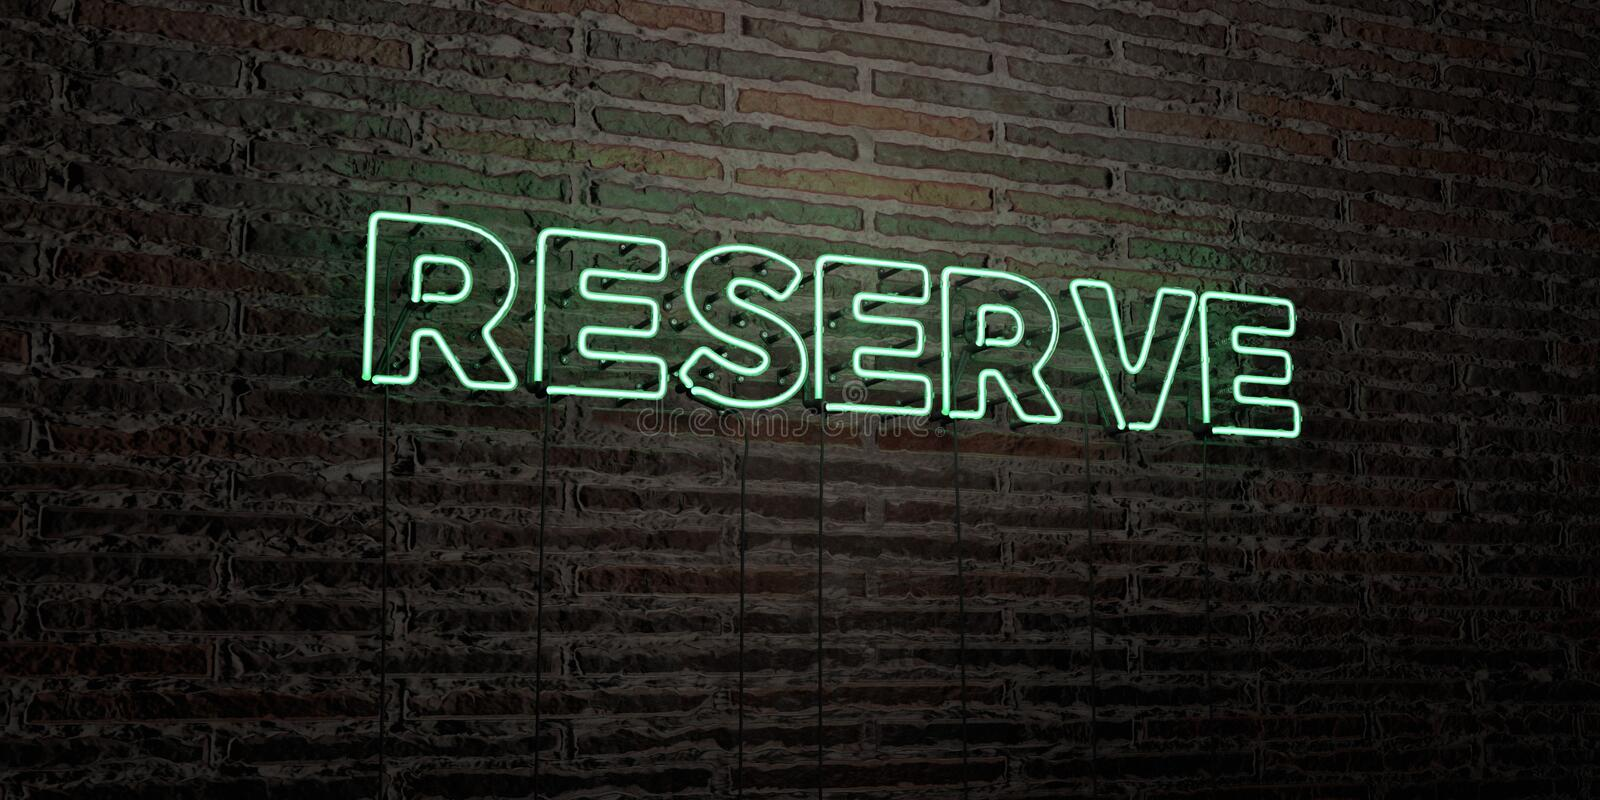 RESERVE -Realistic Neon Sign on Brick Wall background - 3D rendered royalty free stock image vector illustration